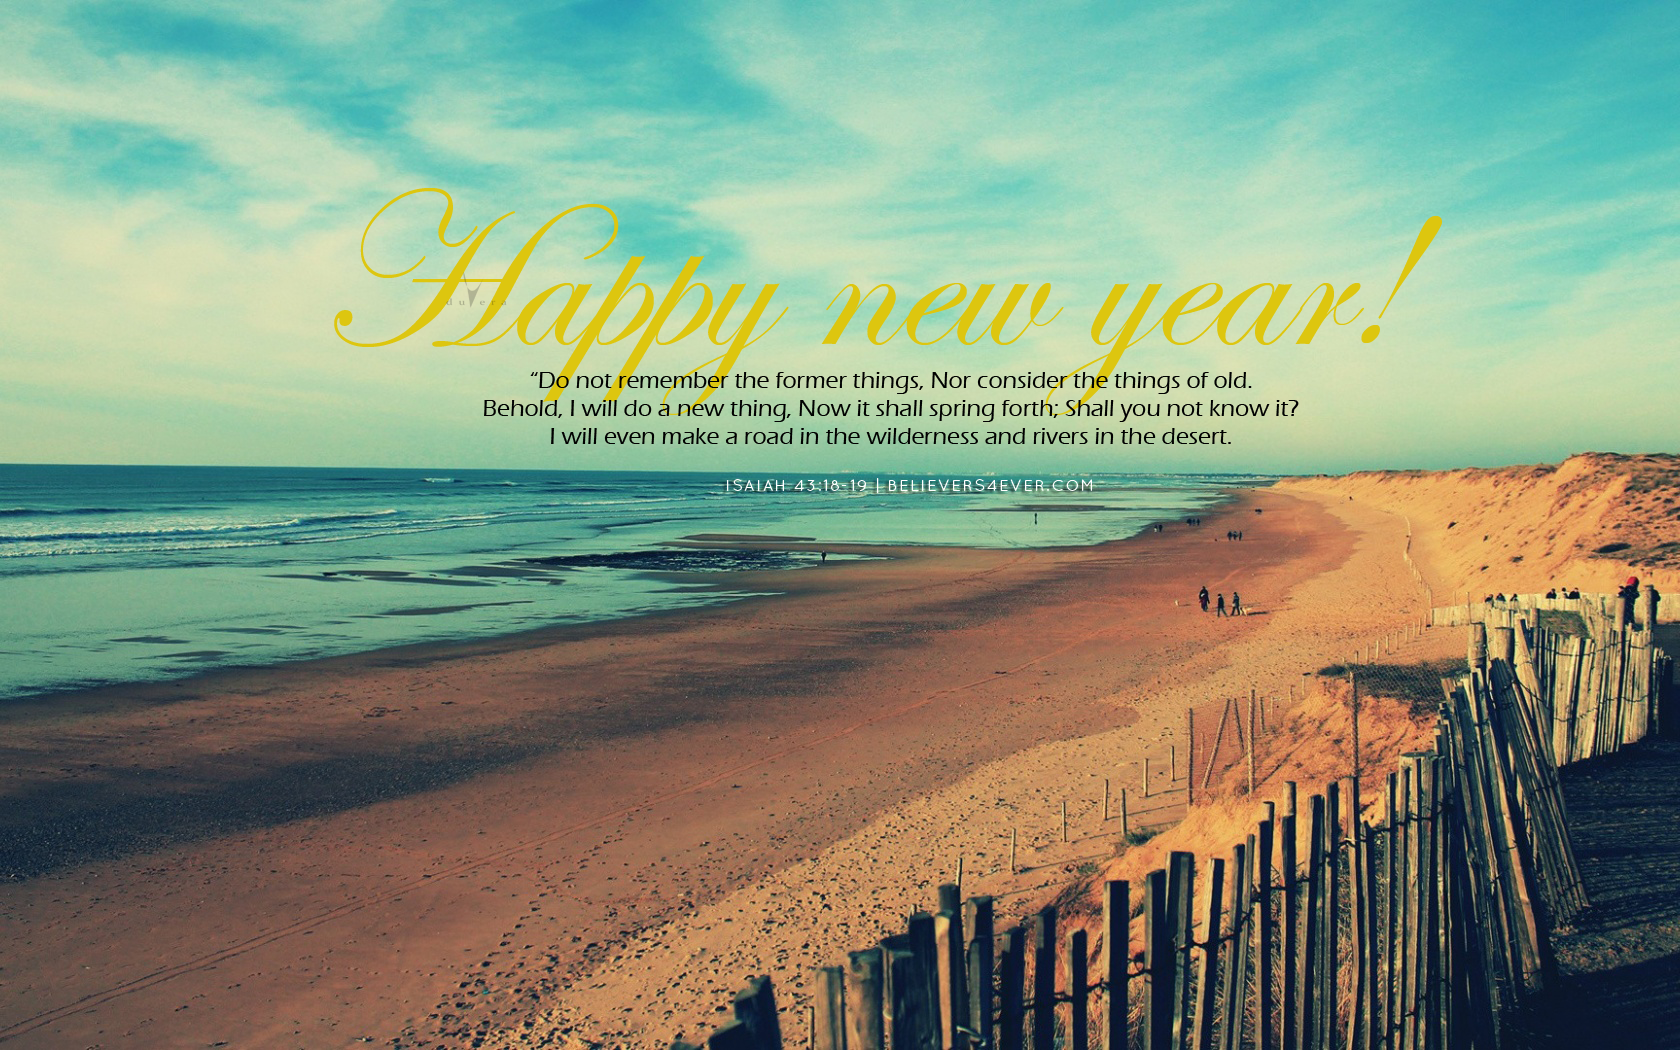 Former things Christian new year graphics 1680x1050